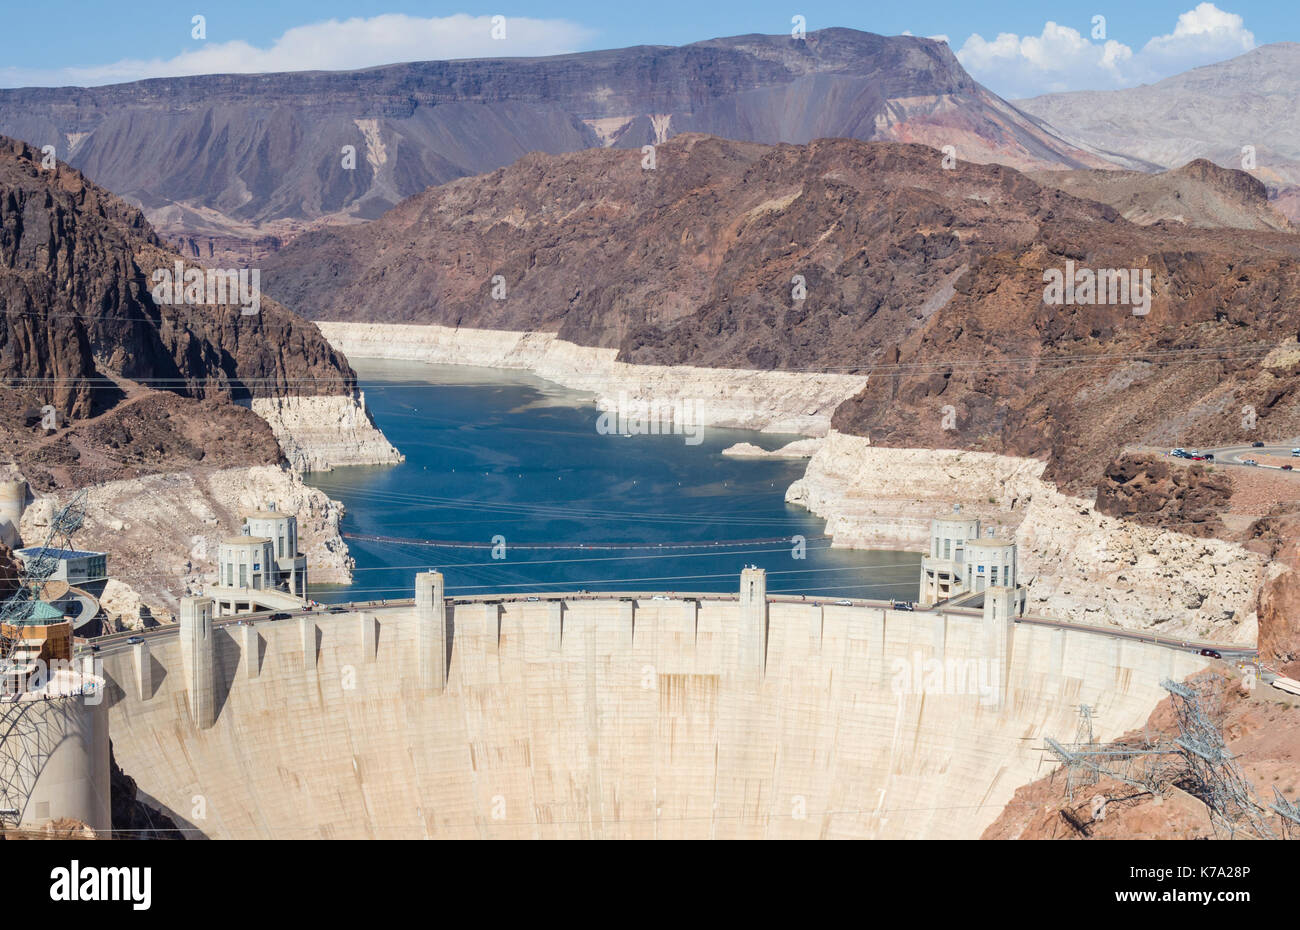 Boulder City, NV - 27 July 2016: The concrete wall of the Hoover Dam, major hydroelecric power plant and water storage Stock Photo